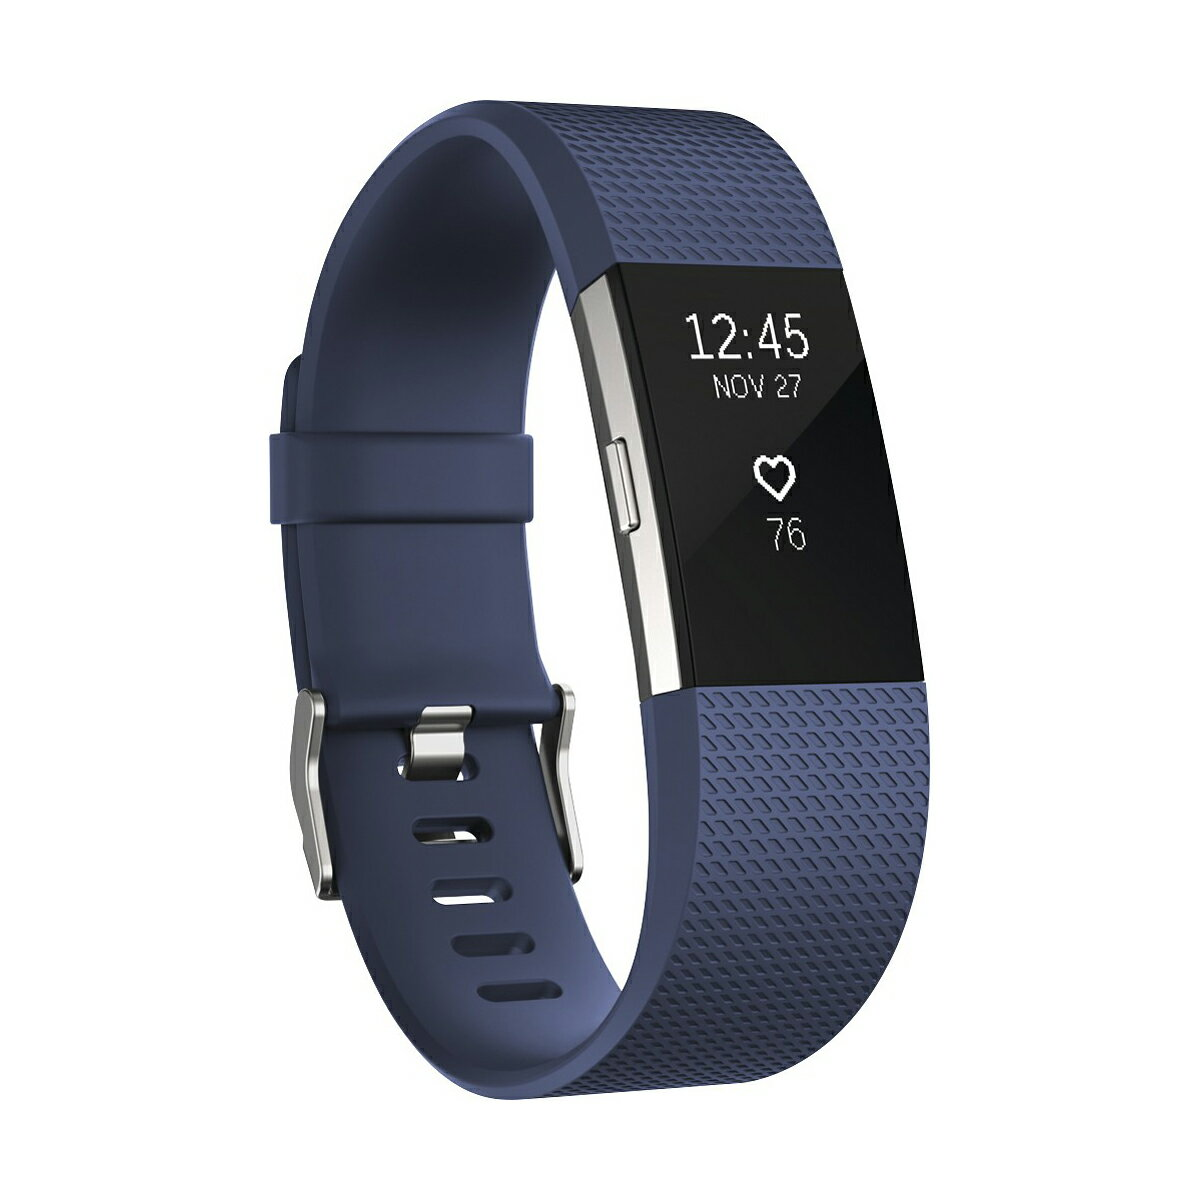 Fitbit Charge 2 Activity Fitness Tracker and Heart Rate Monitor Wristband - Blue - Large